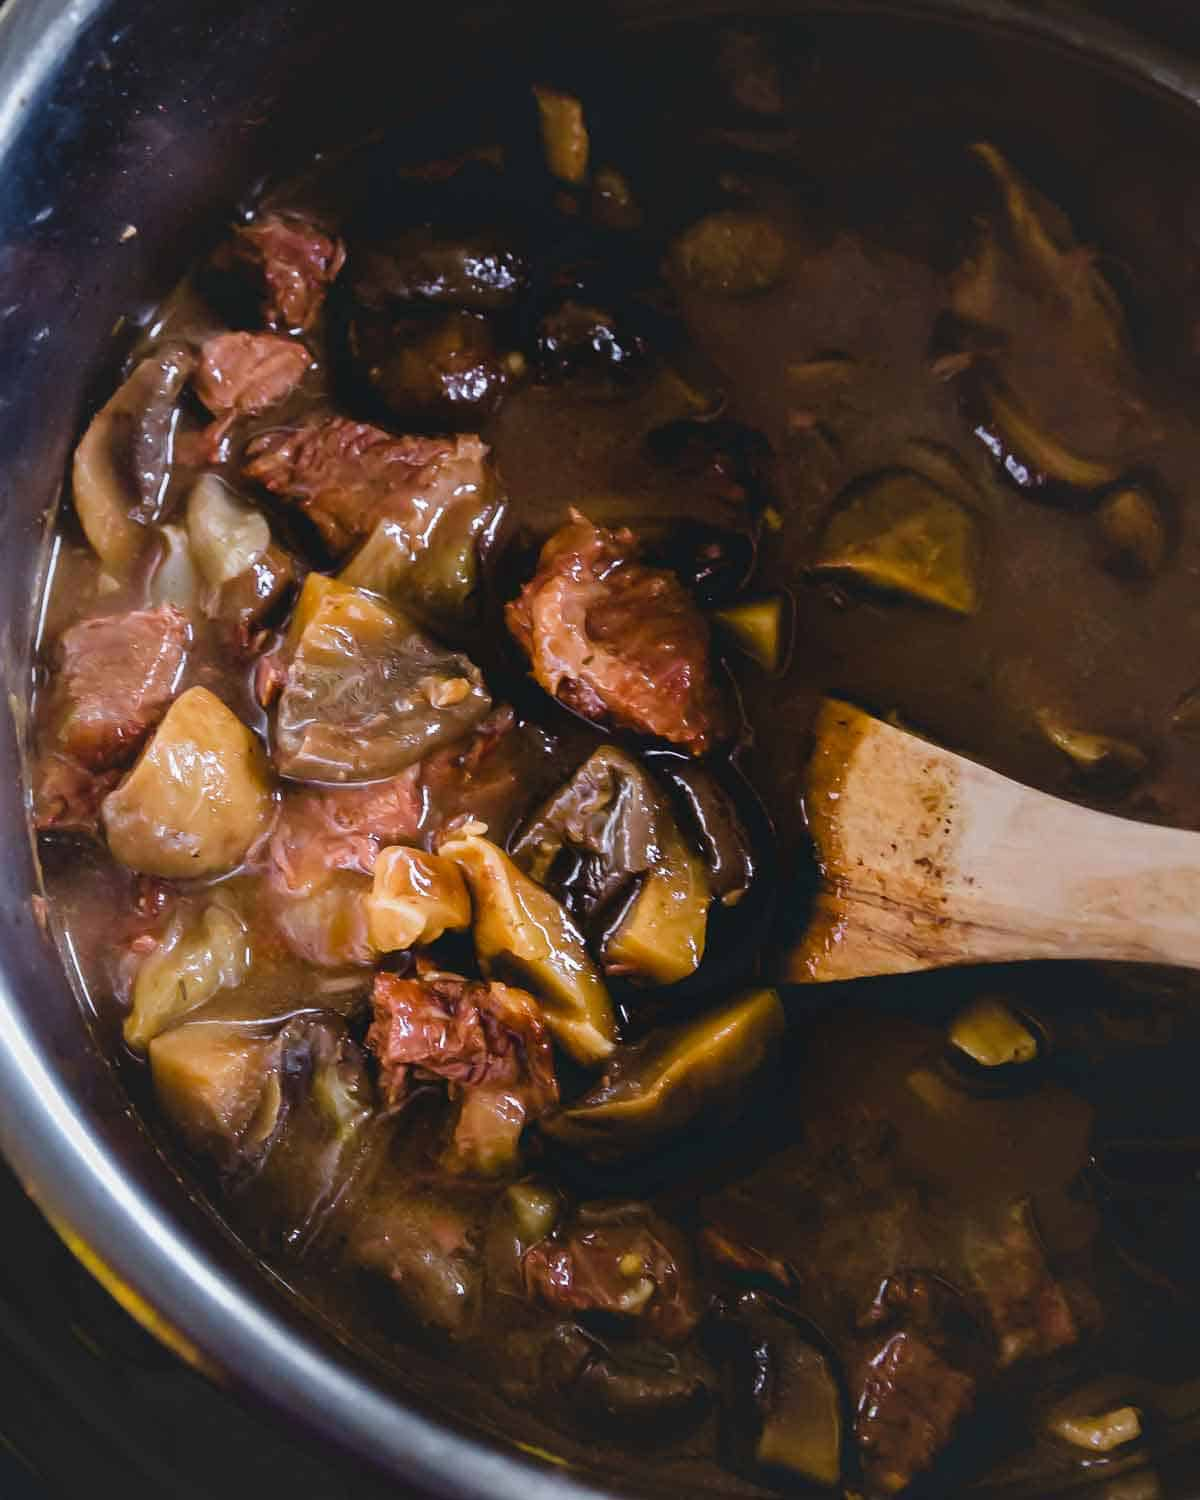 Beef and mushroom stew made in the Instant Pot